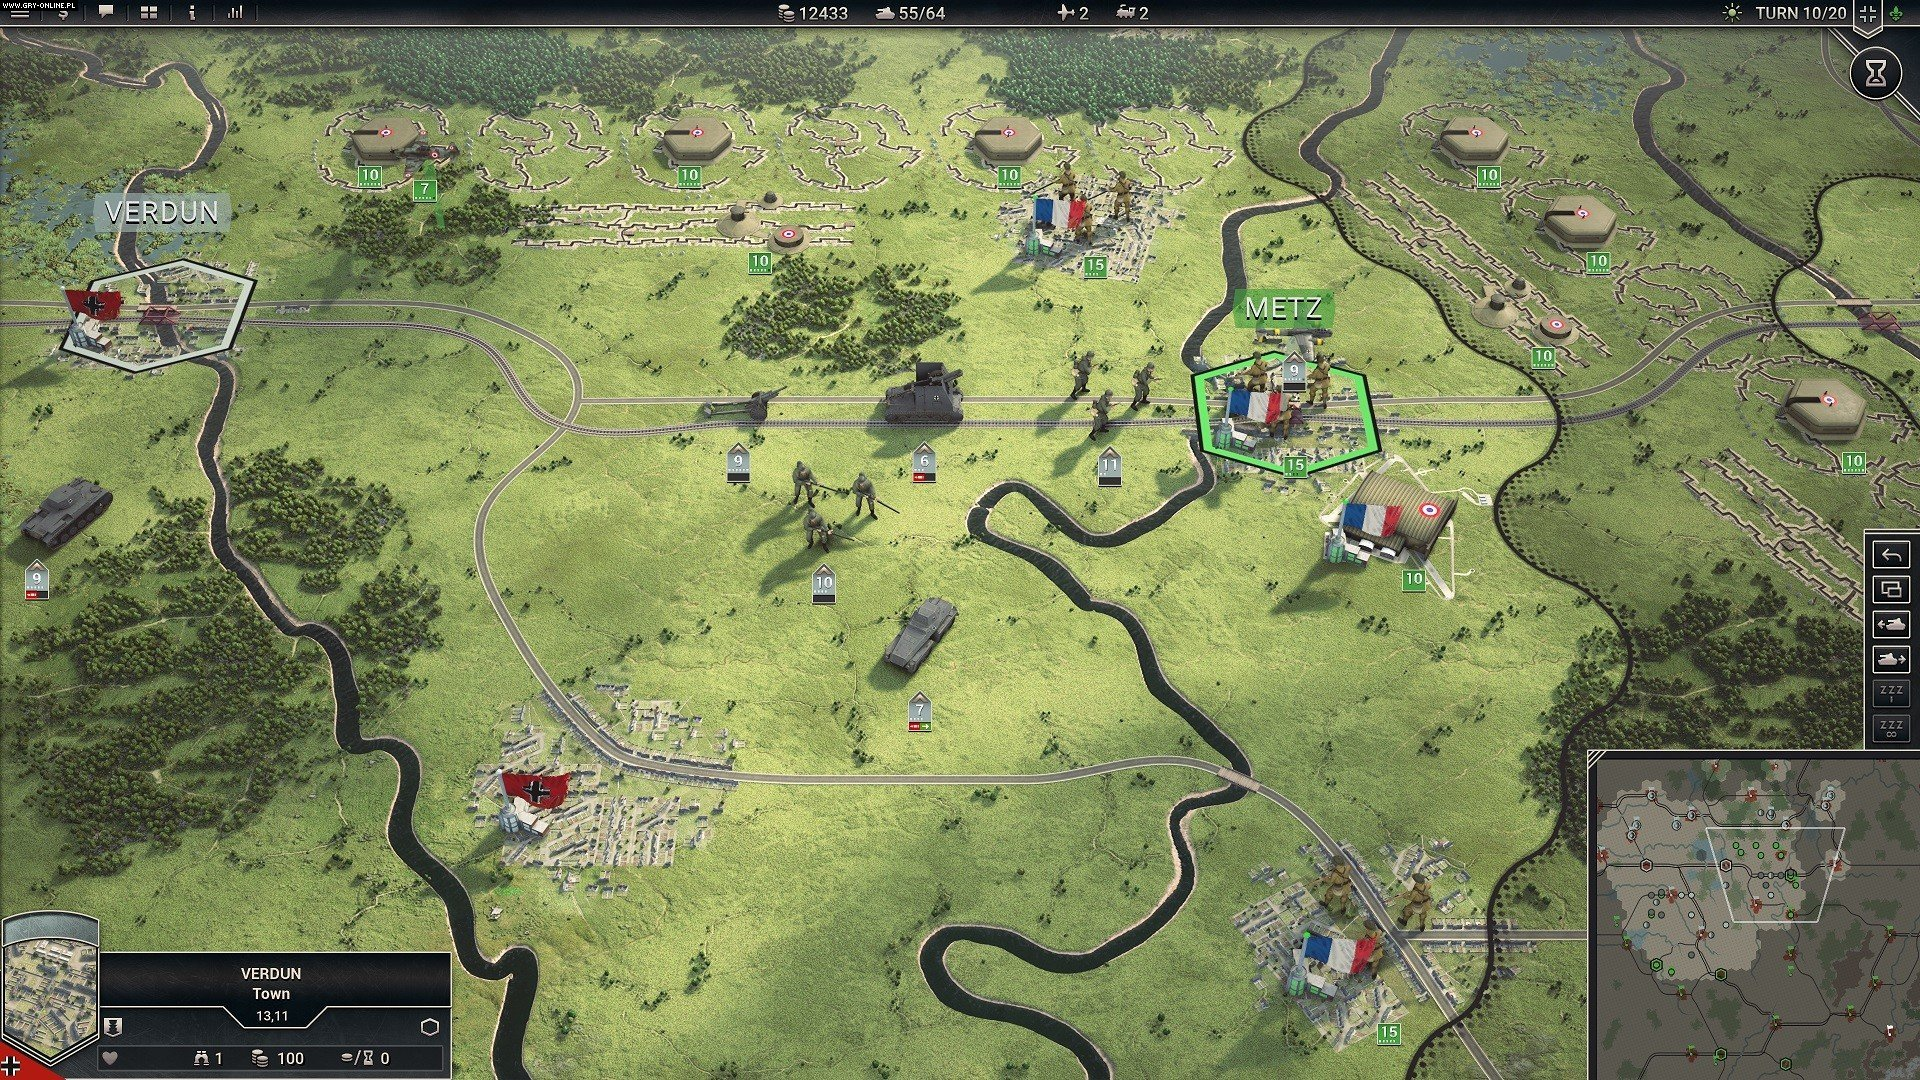 Panzer Corps 2 PC Games Image 3/20, Flashback Games, Matrix Games/Slitherine